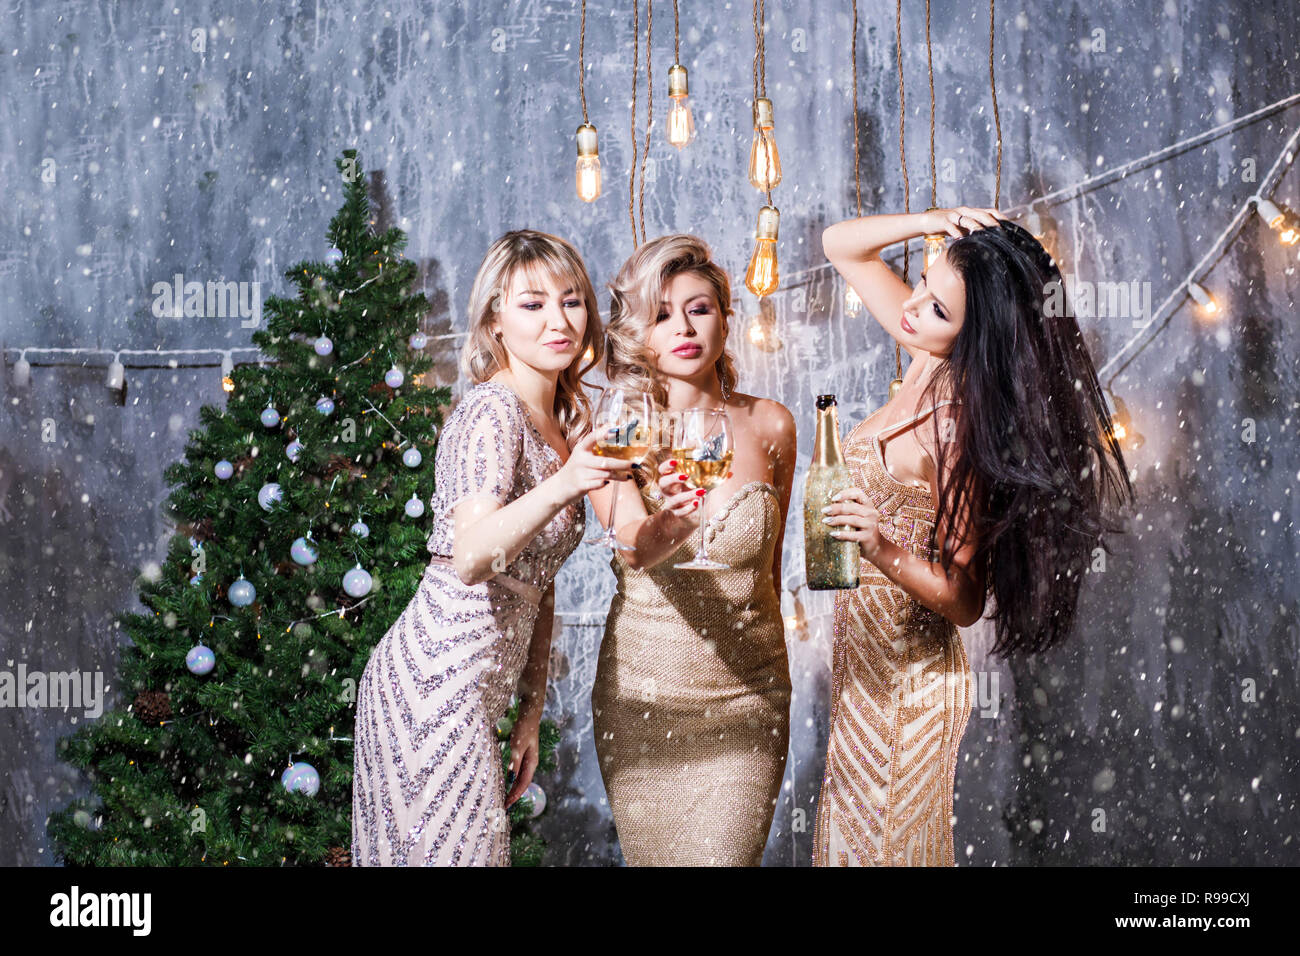 Christmas Evening Party.Three Beautiful Girls On The New Year S Eve Party Drinks